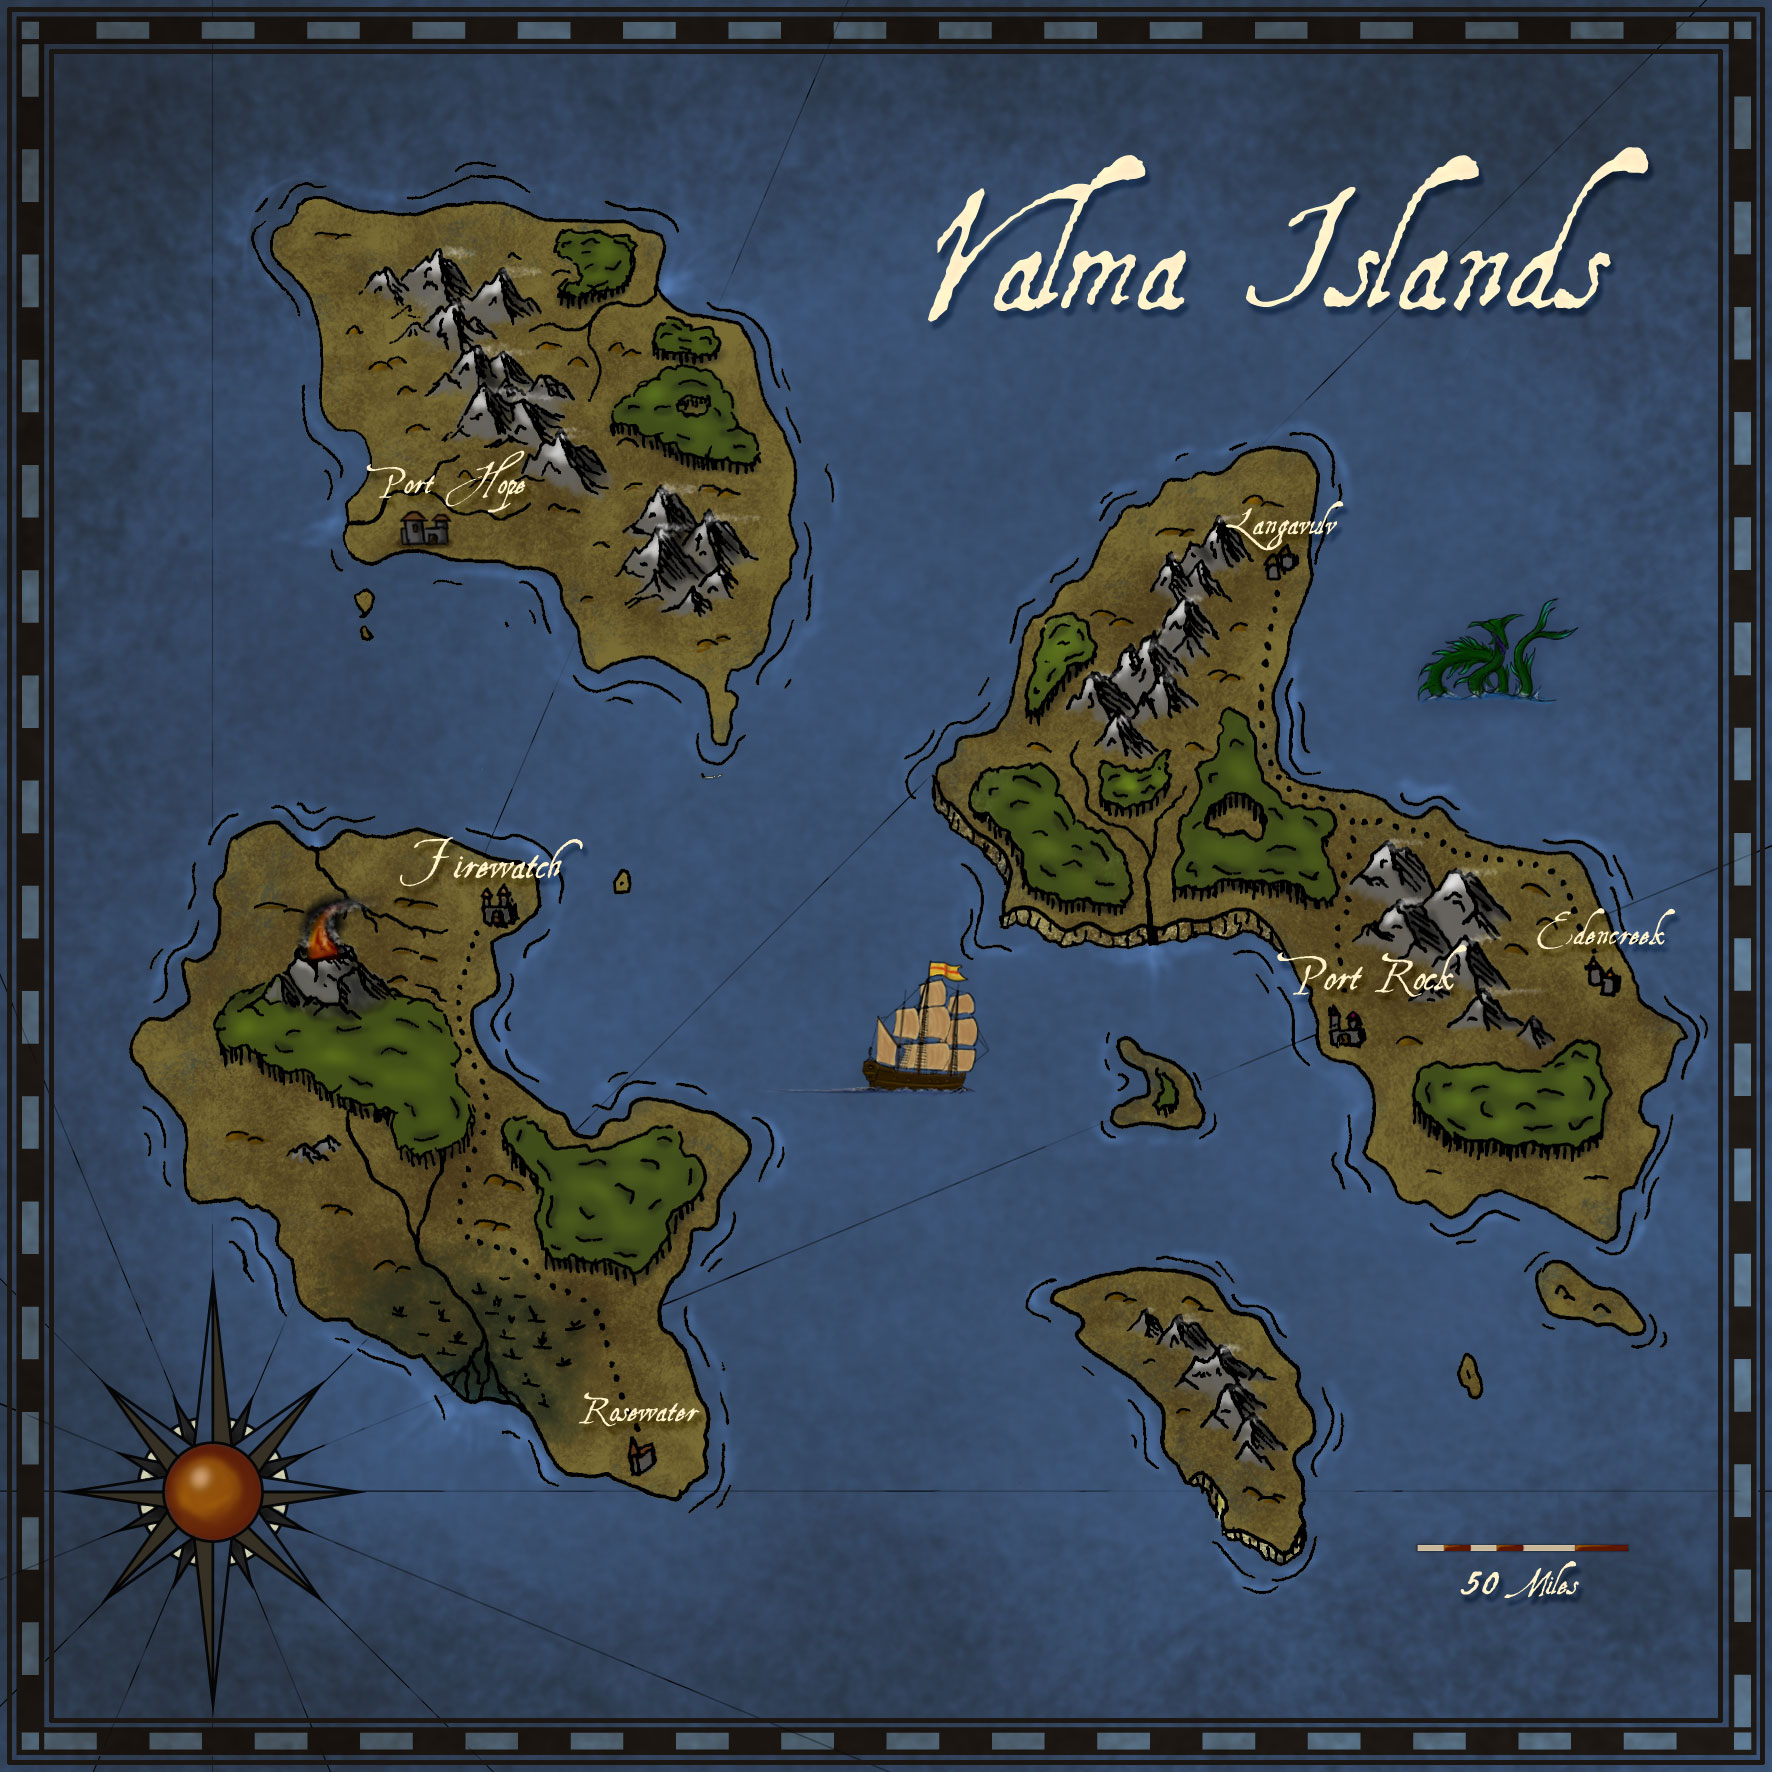 Valma Islands. challenge entry